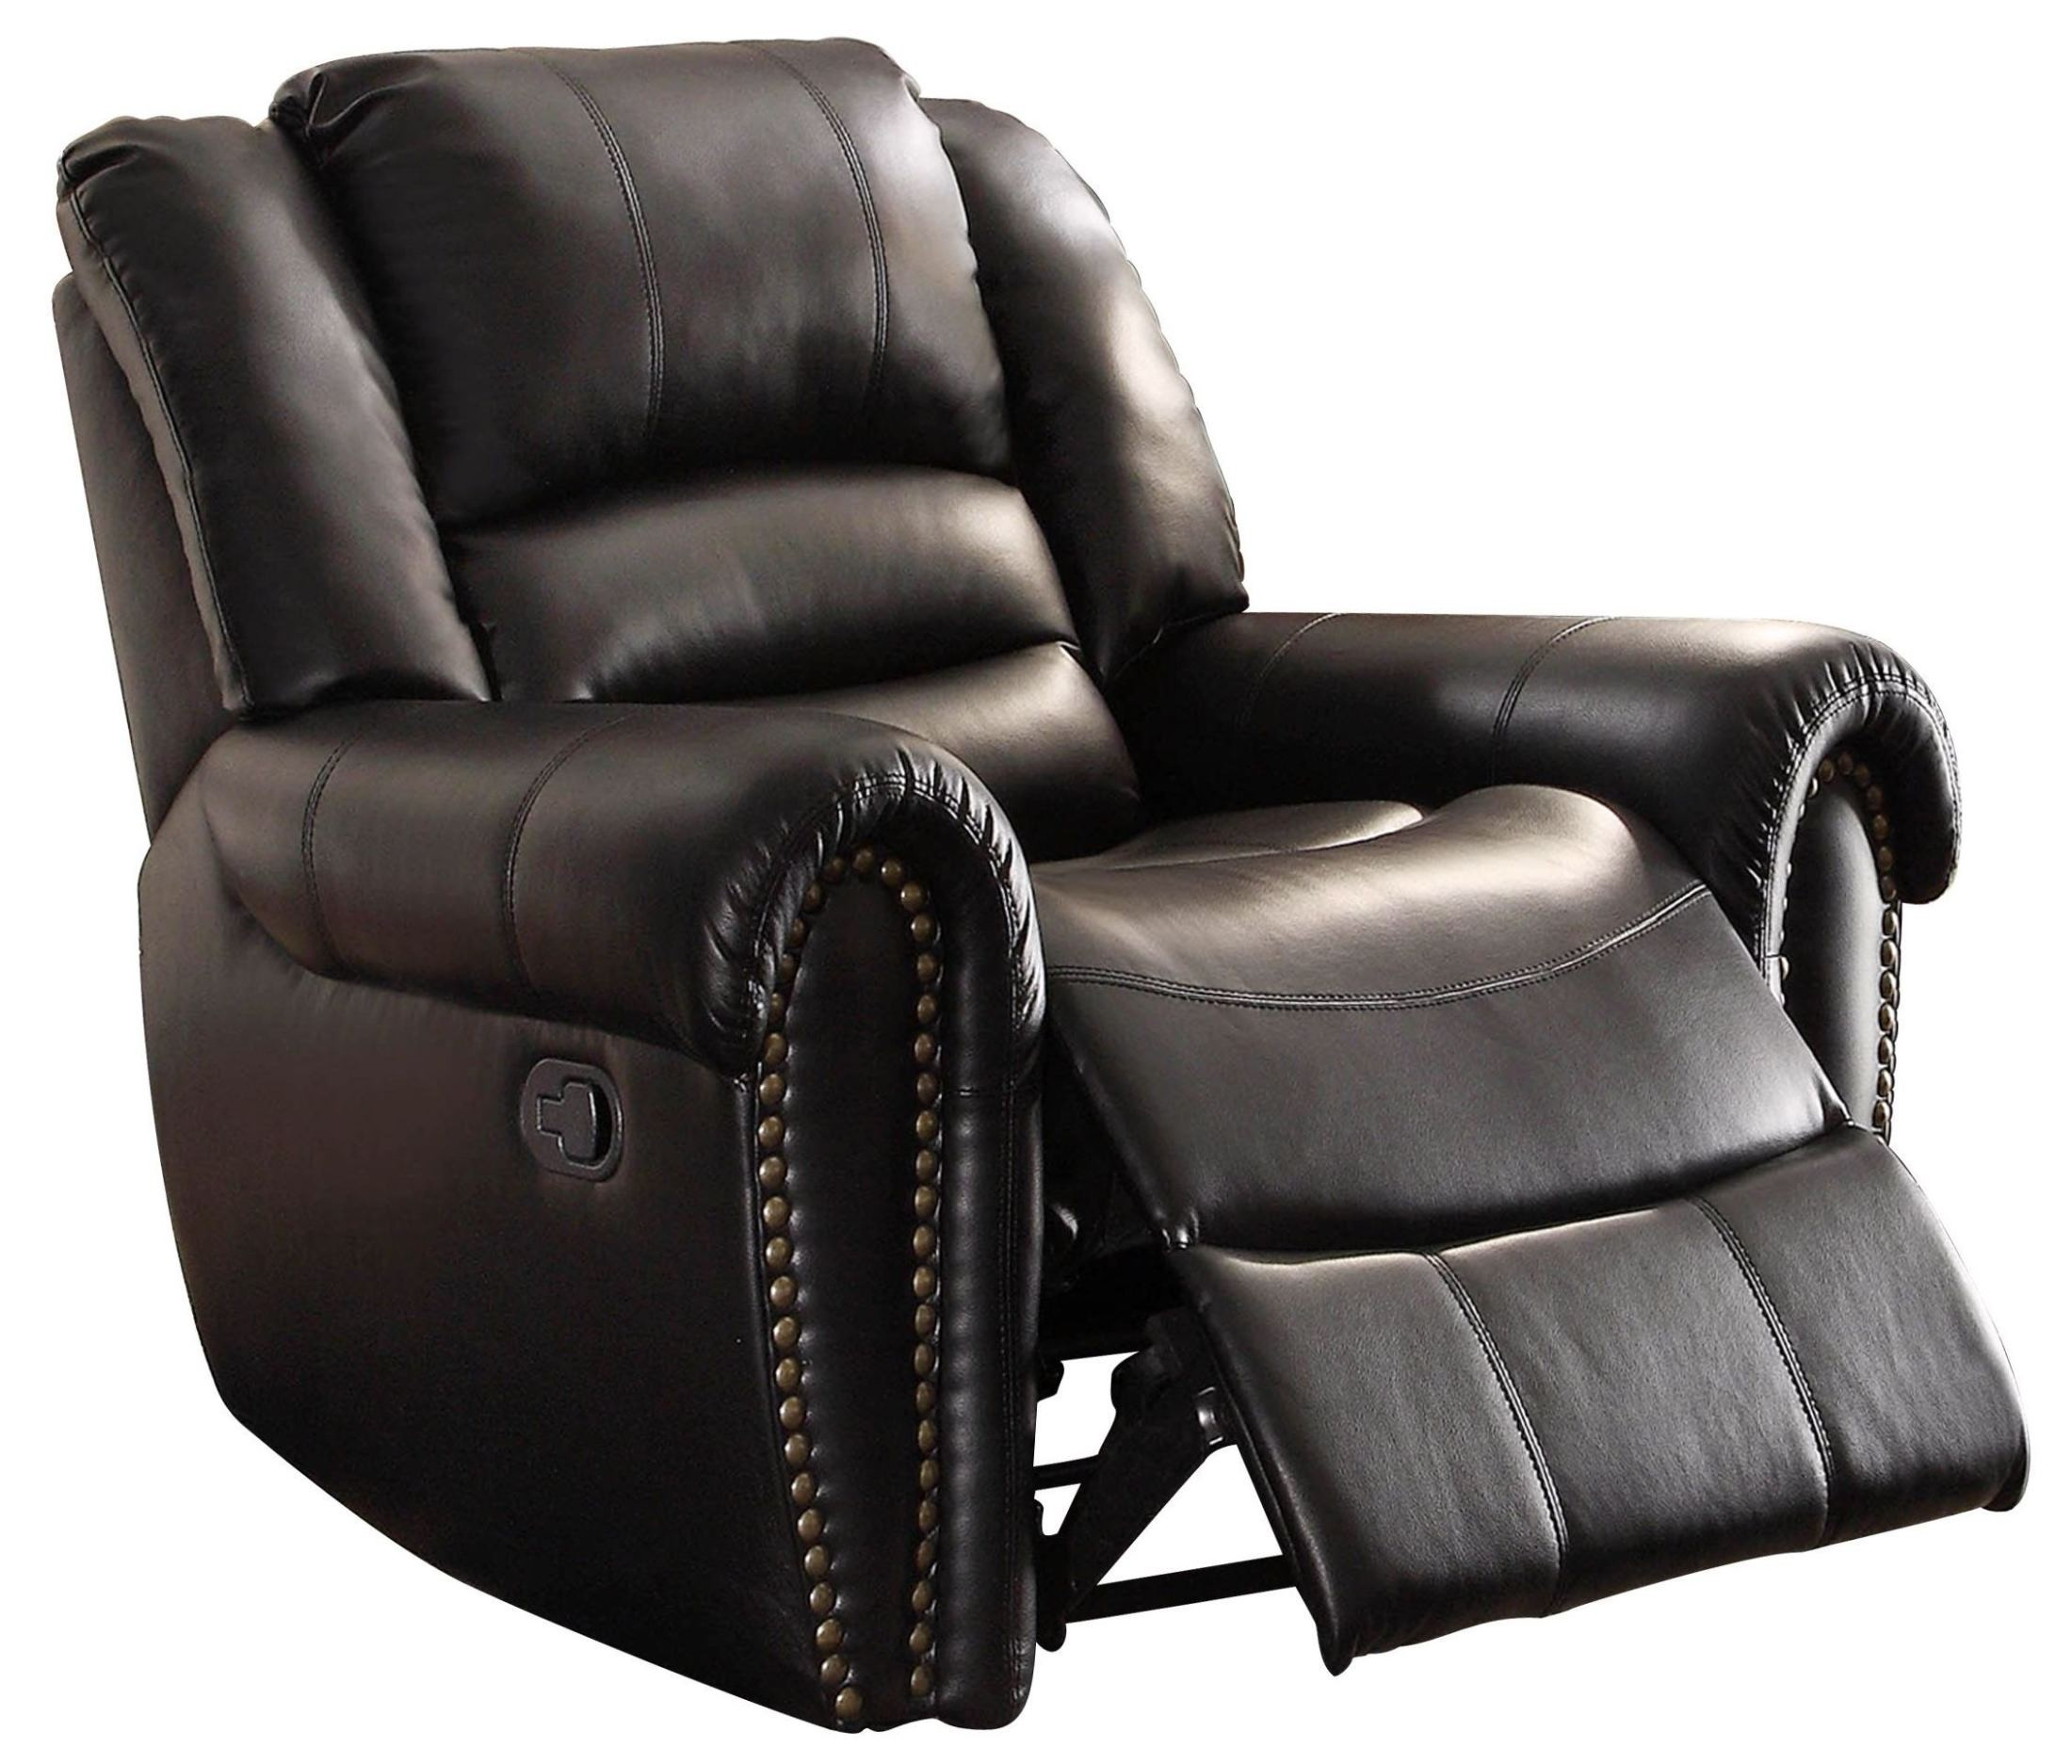 double recliner chairs sleeper chair center hill black reclining living room set from homelegance 9668blk 3 coleman furniture